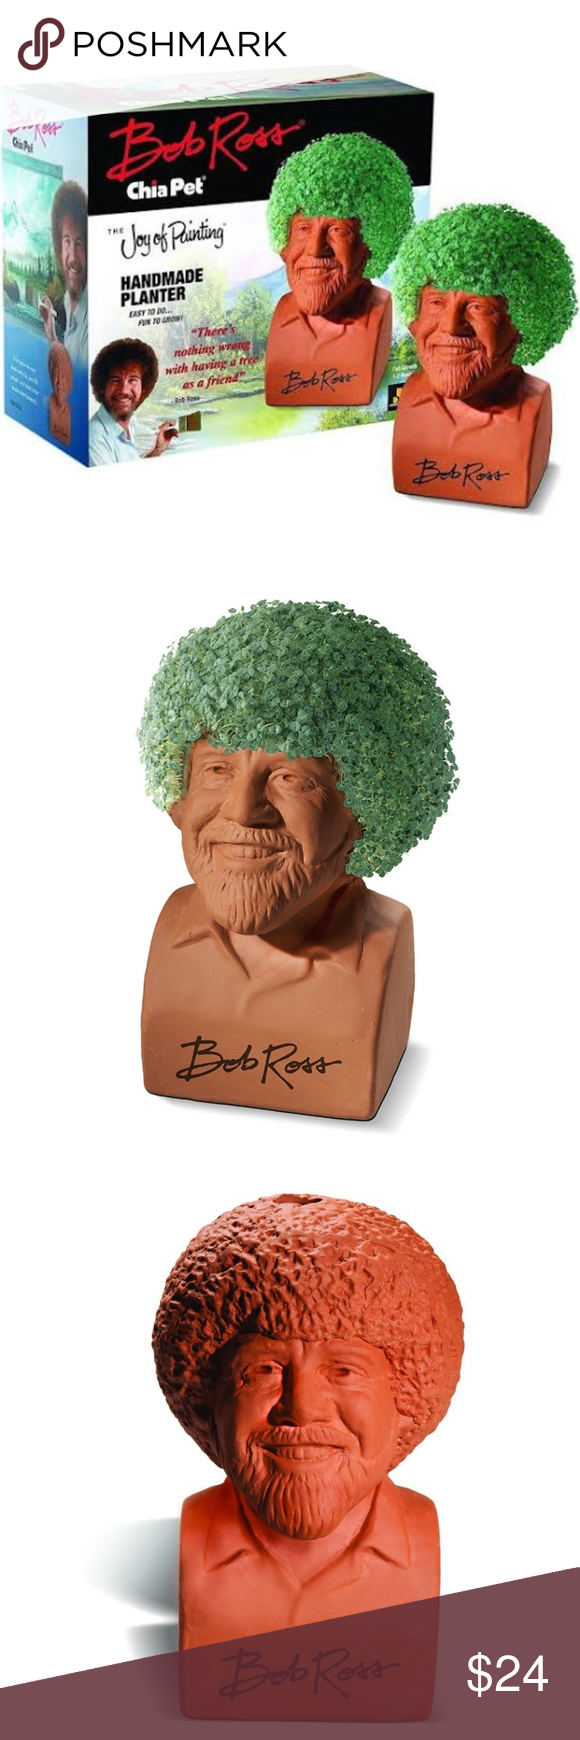 Bob Ross Chia Pet Joy Of Painting New By Neca Now You Can Enjoy The Gentle Artist With The Soft Hypnotic Voice As You Gr Chia Pet Handmade Planter Bob Ross